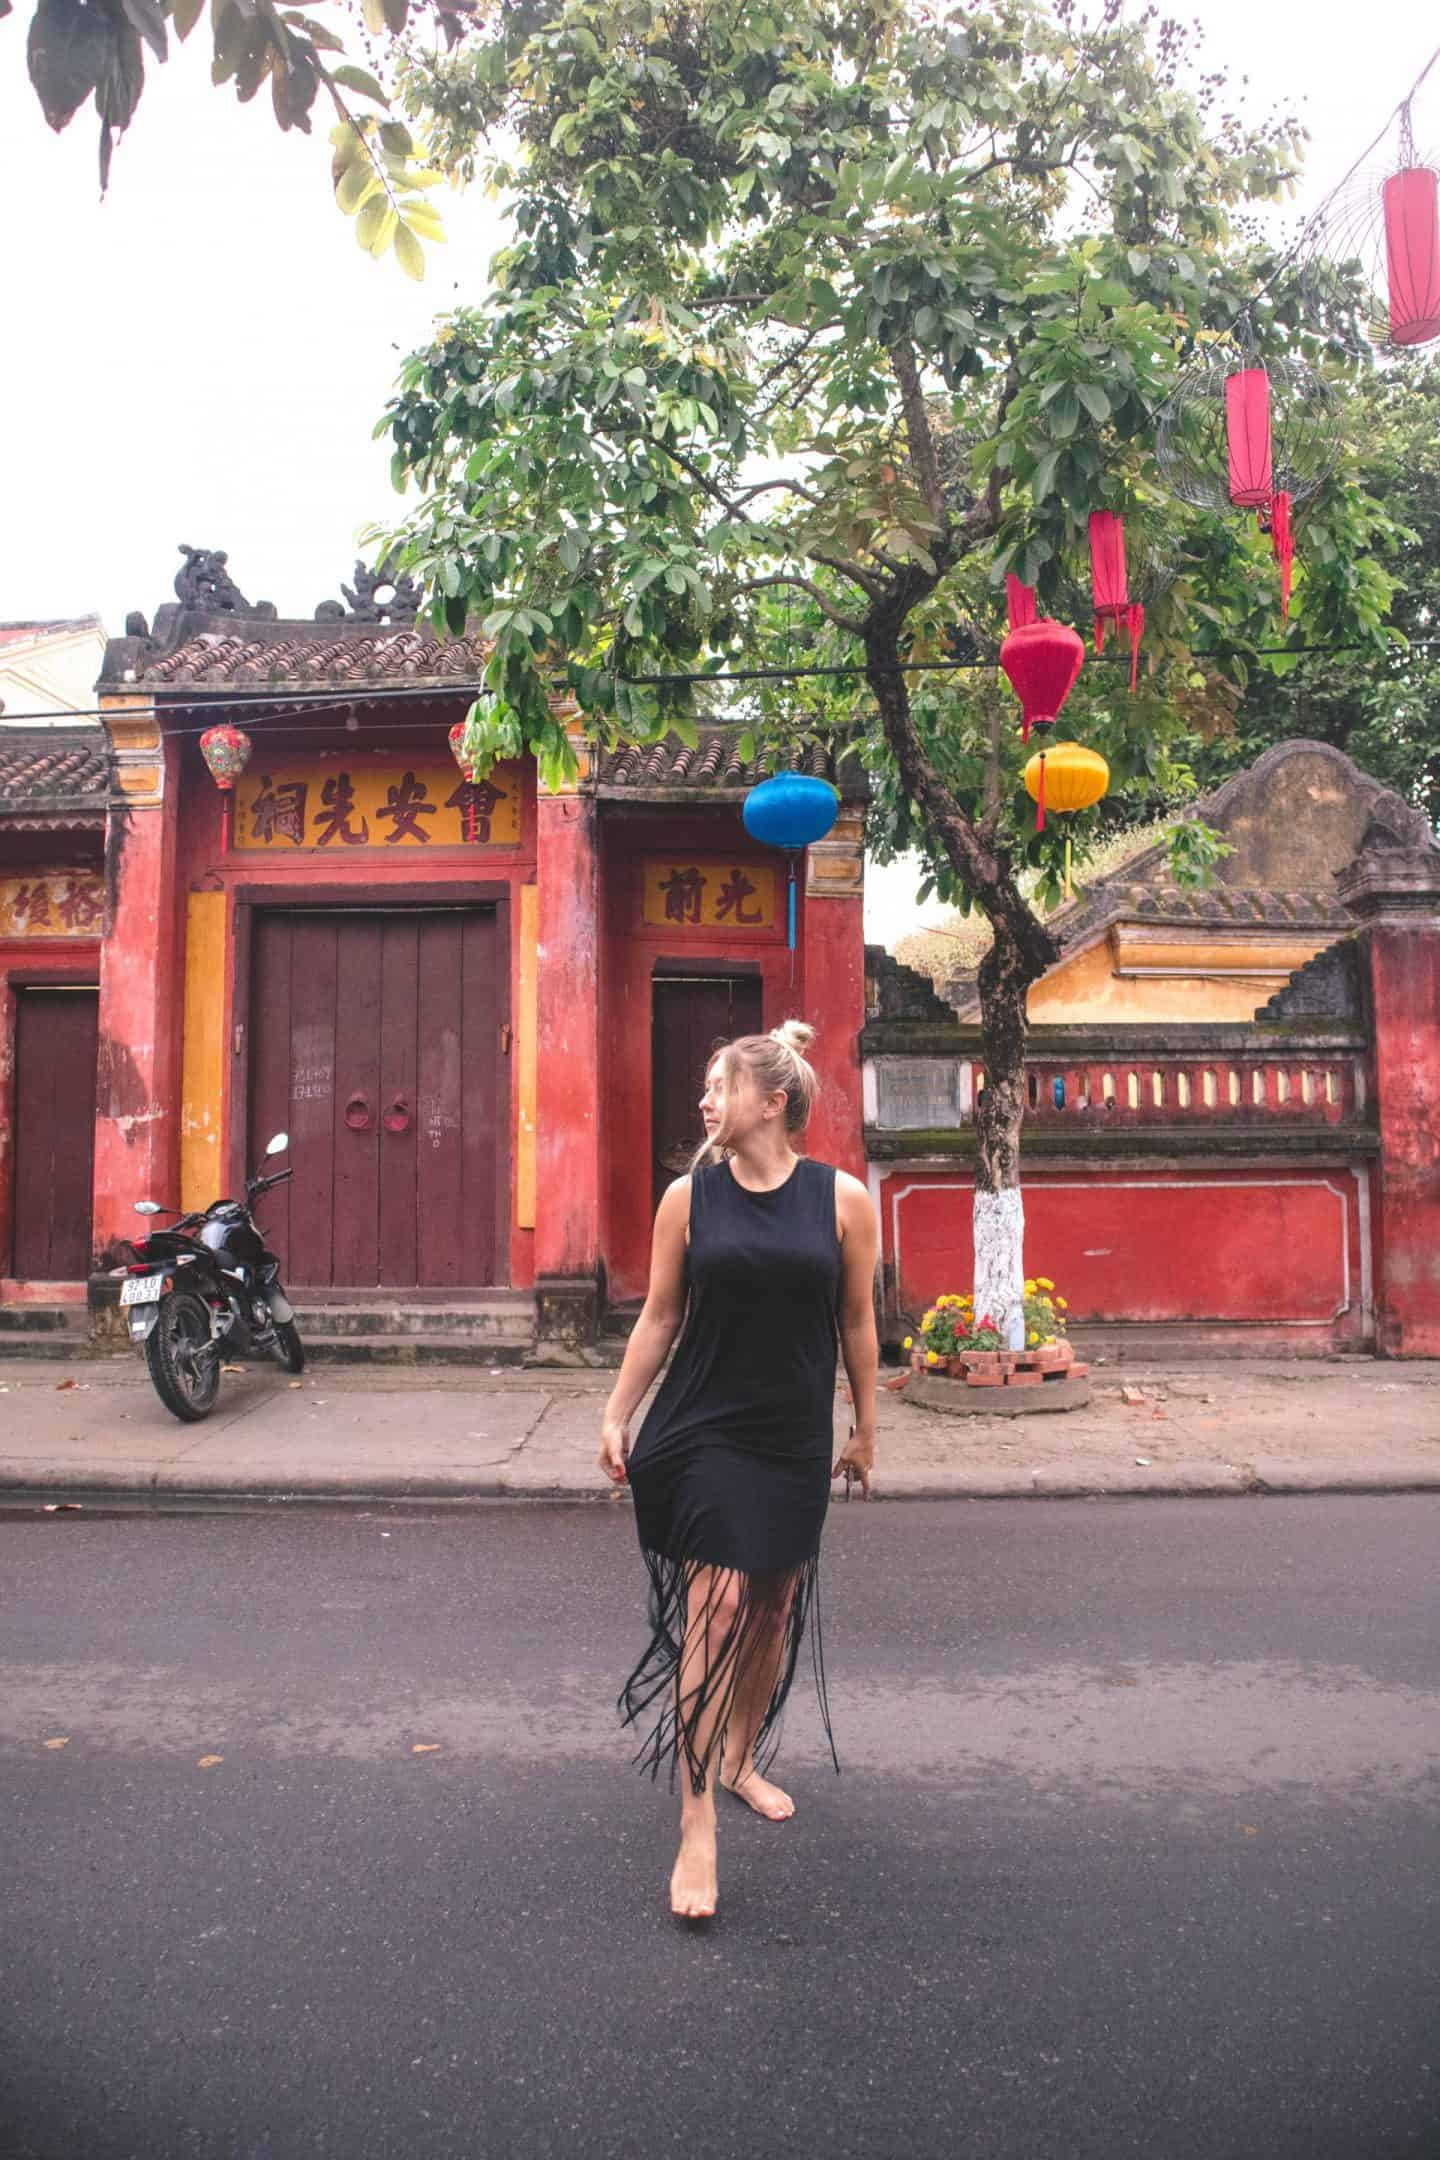 girl barefoot in street with lanterns